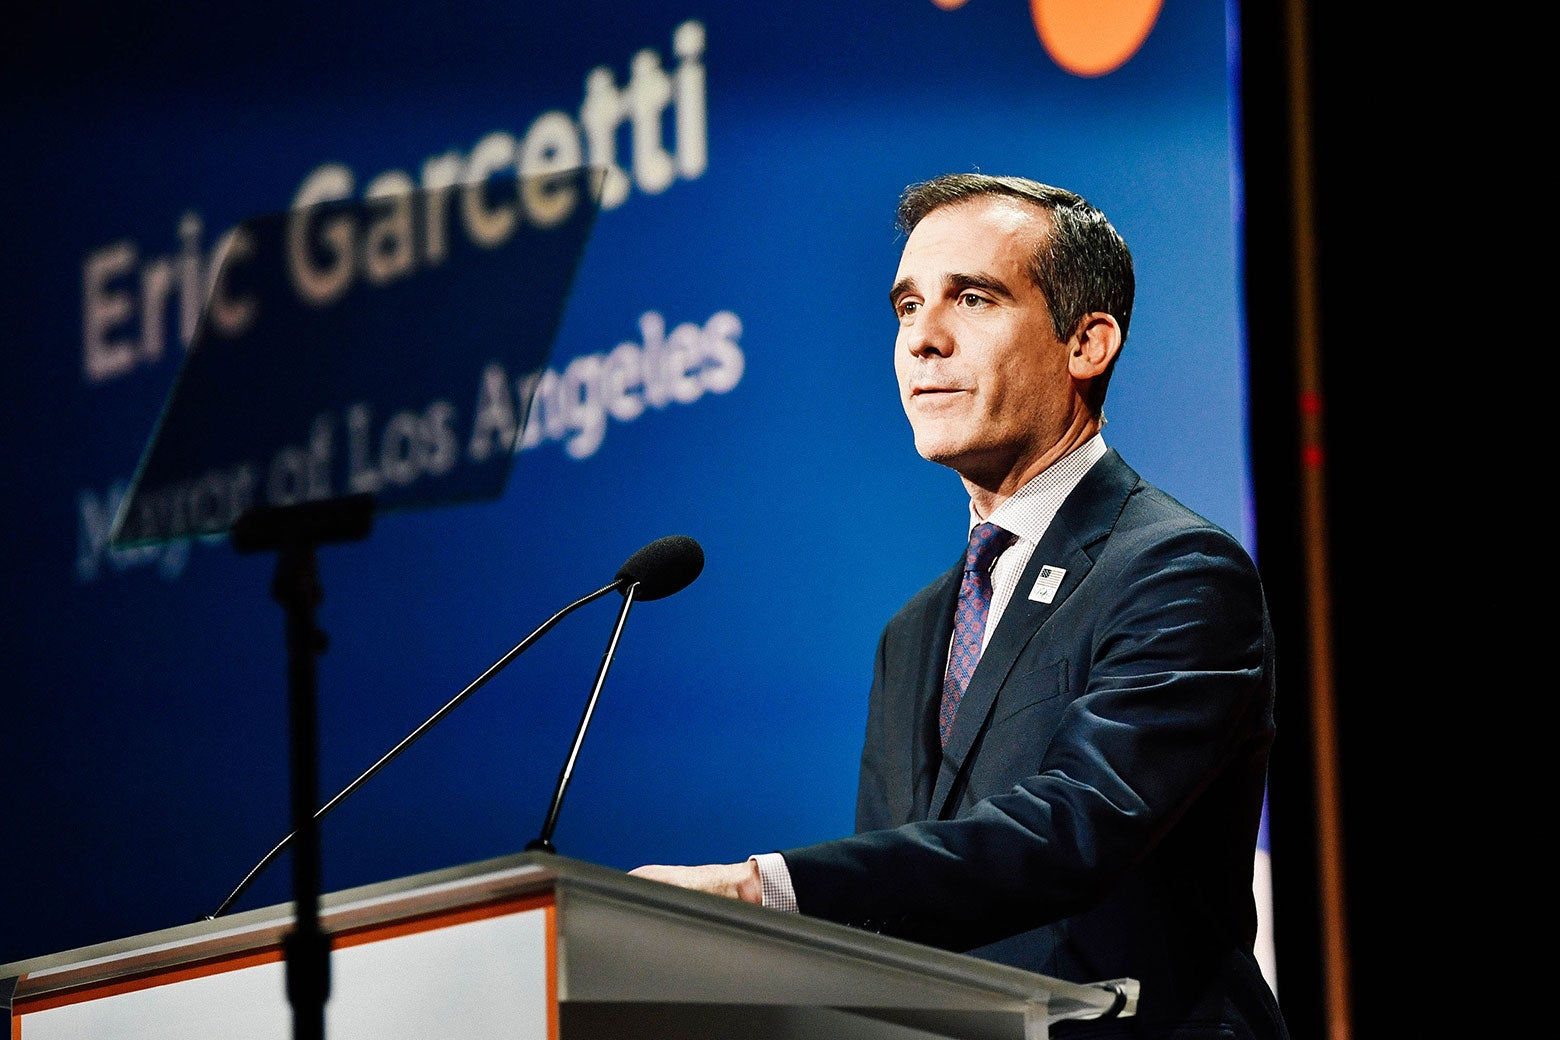 Los Angeles Mayor Eric Garcetti speaks onstage during the Alliance for Children's Rights 26th Annual Dinner on March 28 in Beverly Hills, California.